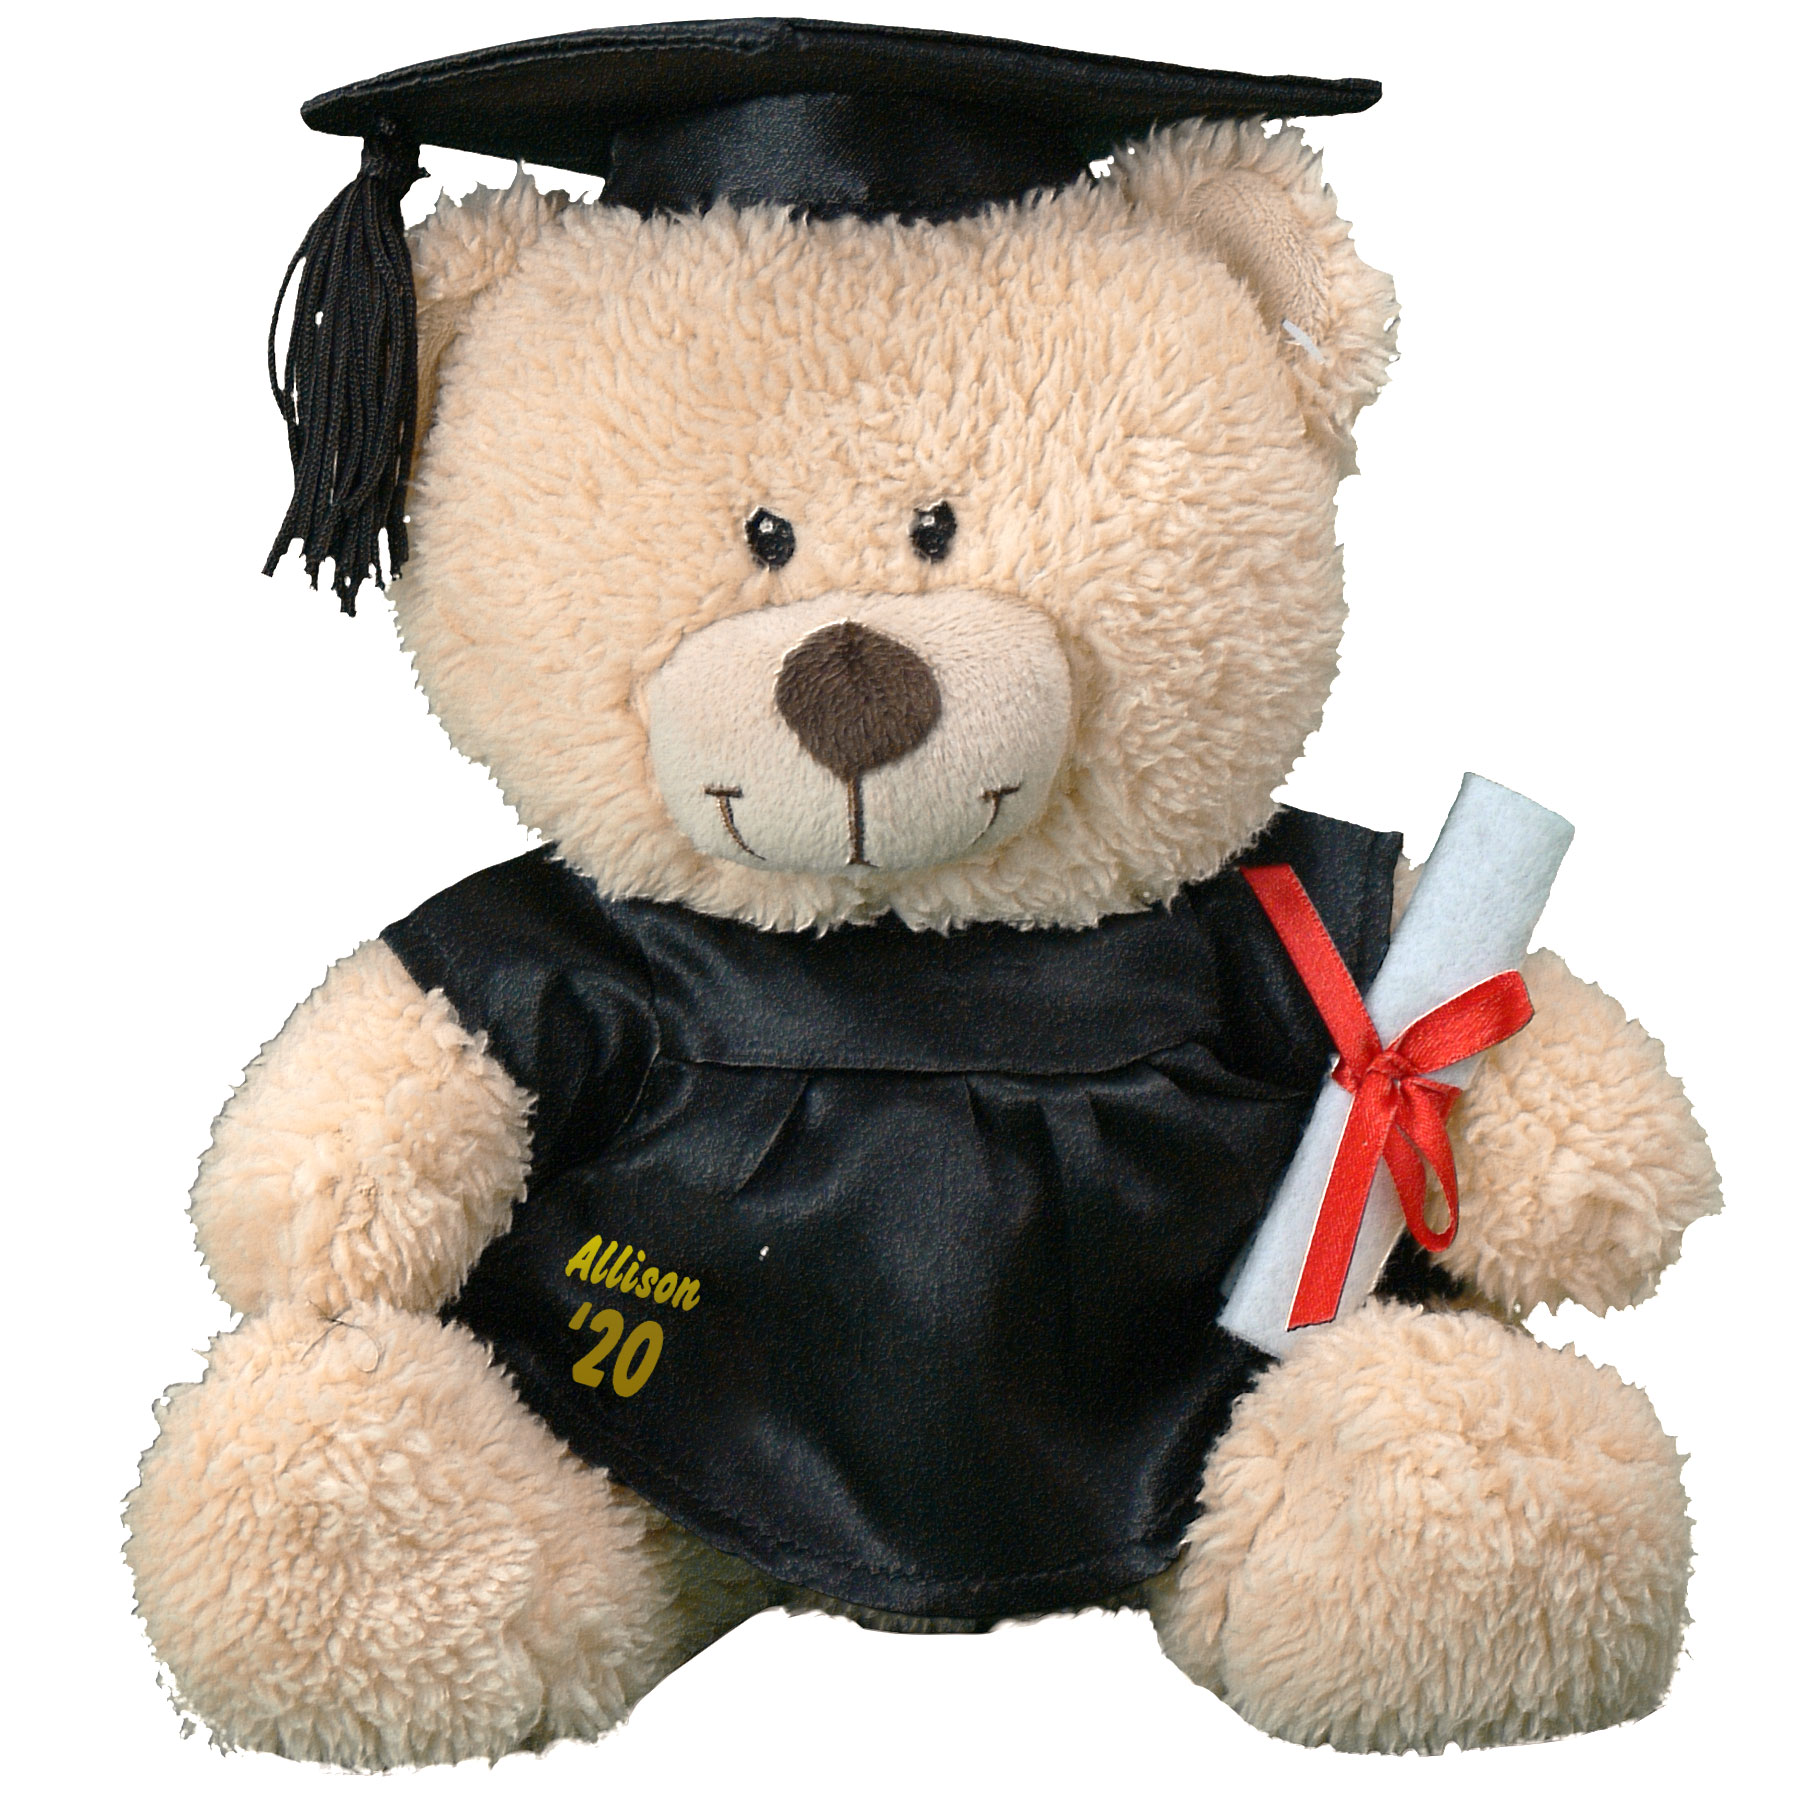 Graduation Cap and Gown Teddy Bear 8B831703